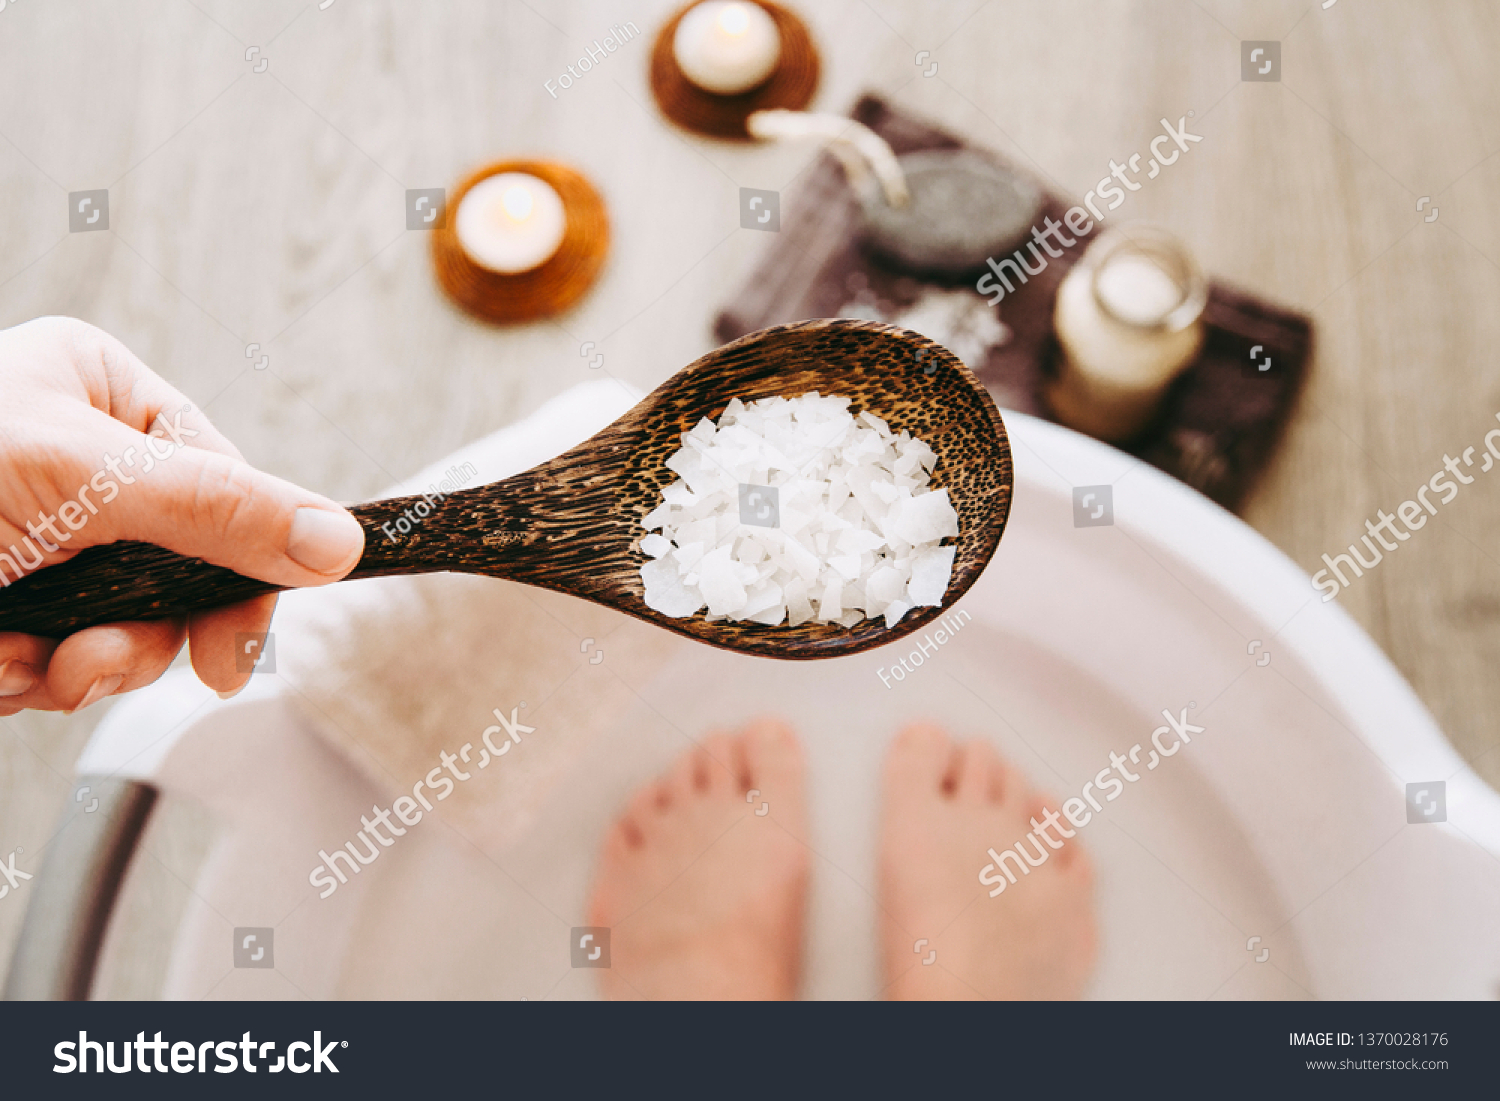 Adding Magnesium Chloride vitamin salt in foot bath water, solution. Magnesium grains in foot bath water are ideal for replenishing the body with this essential mineral, promoting overall well being. #1370028176